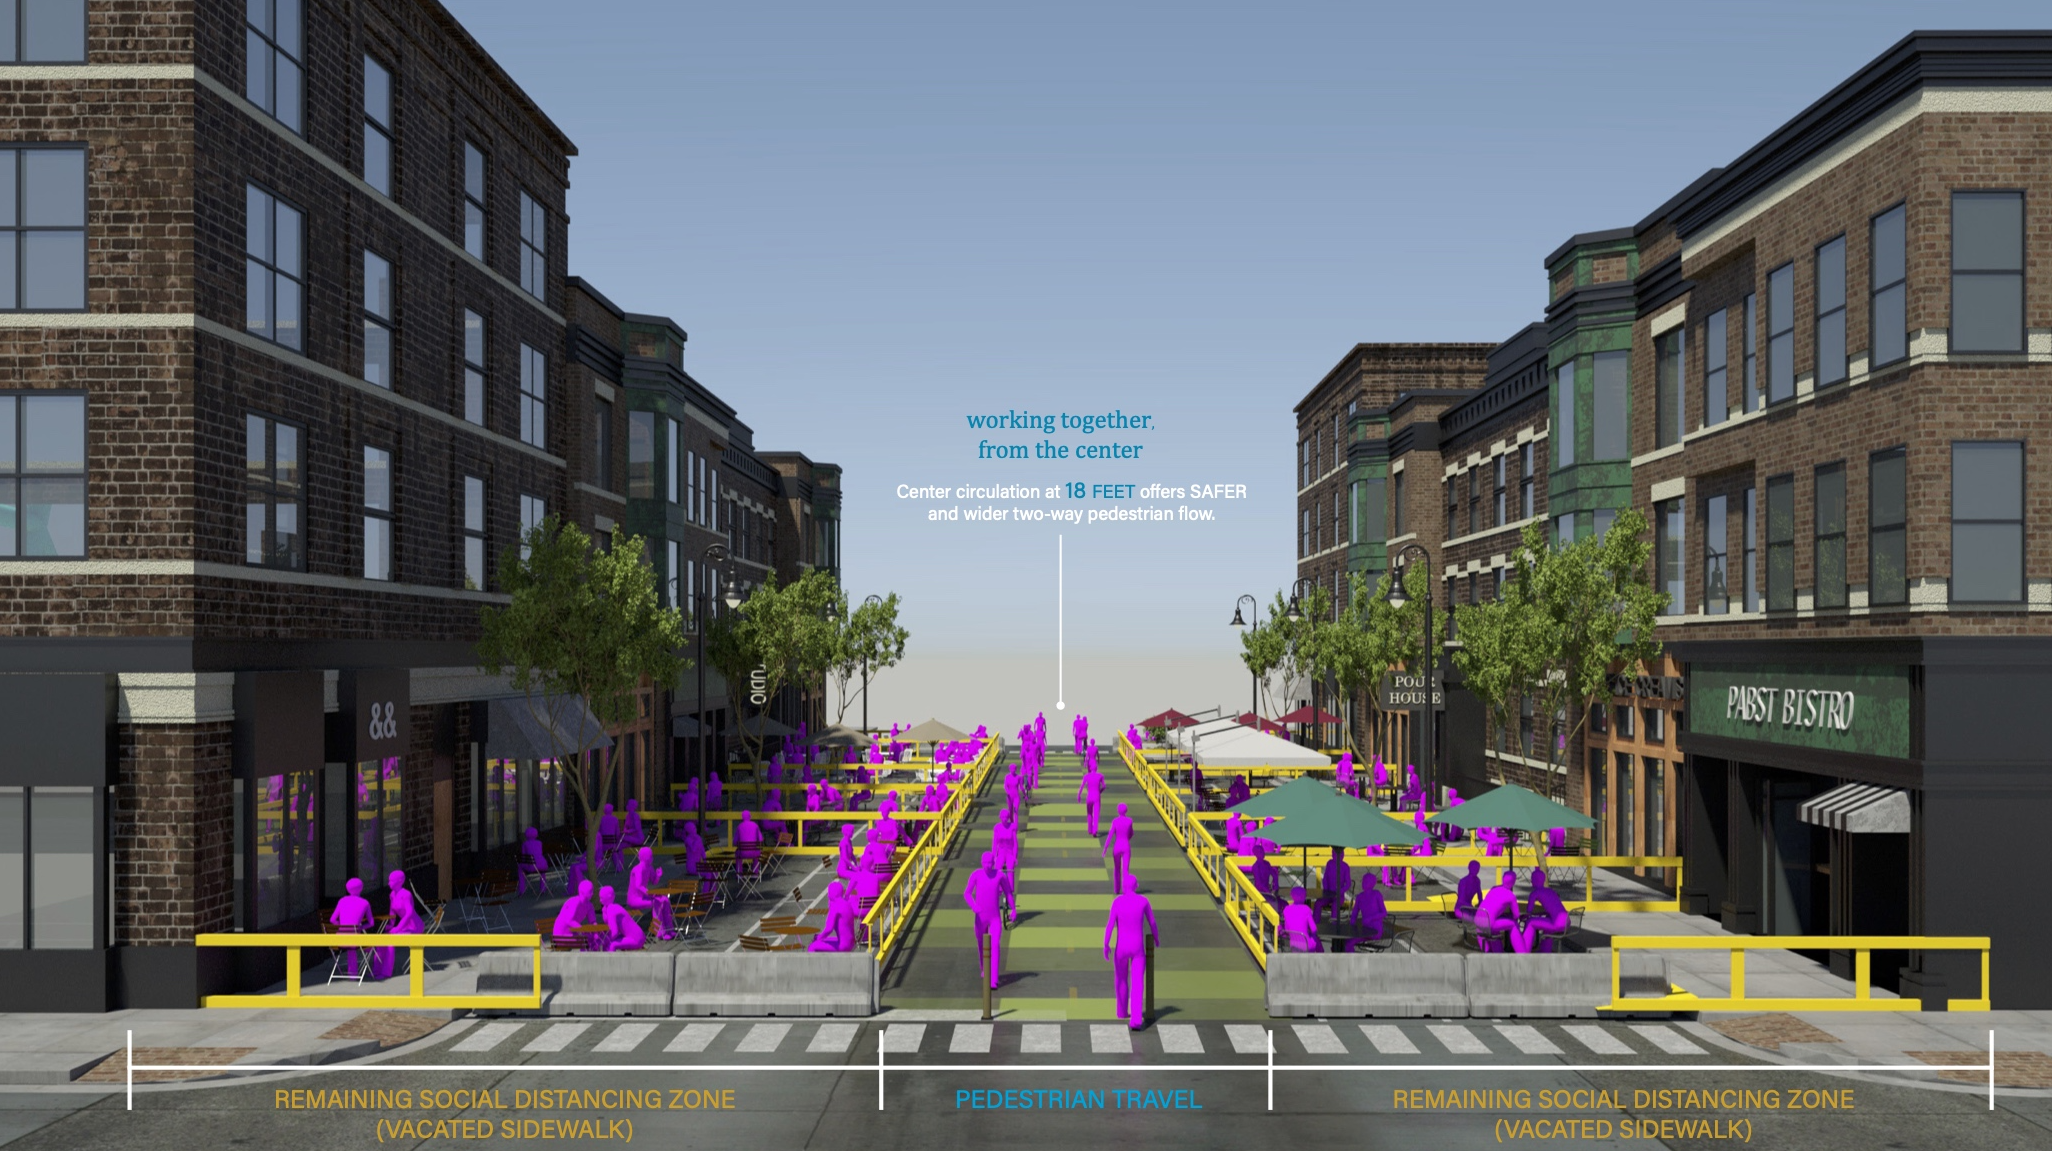 A CGI rendering of what outdoor dining could look like, with pink pedestrian walking in the middle of a street.